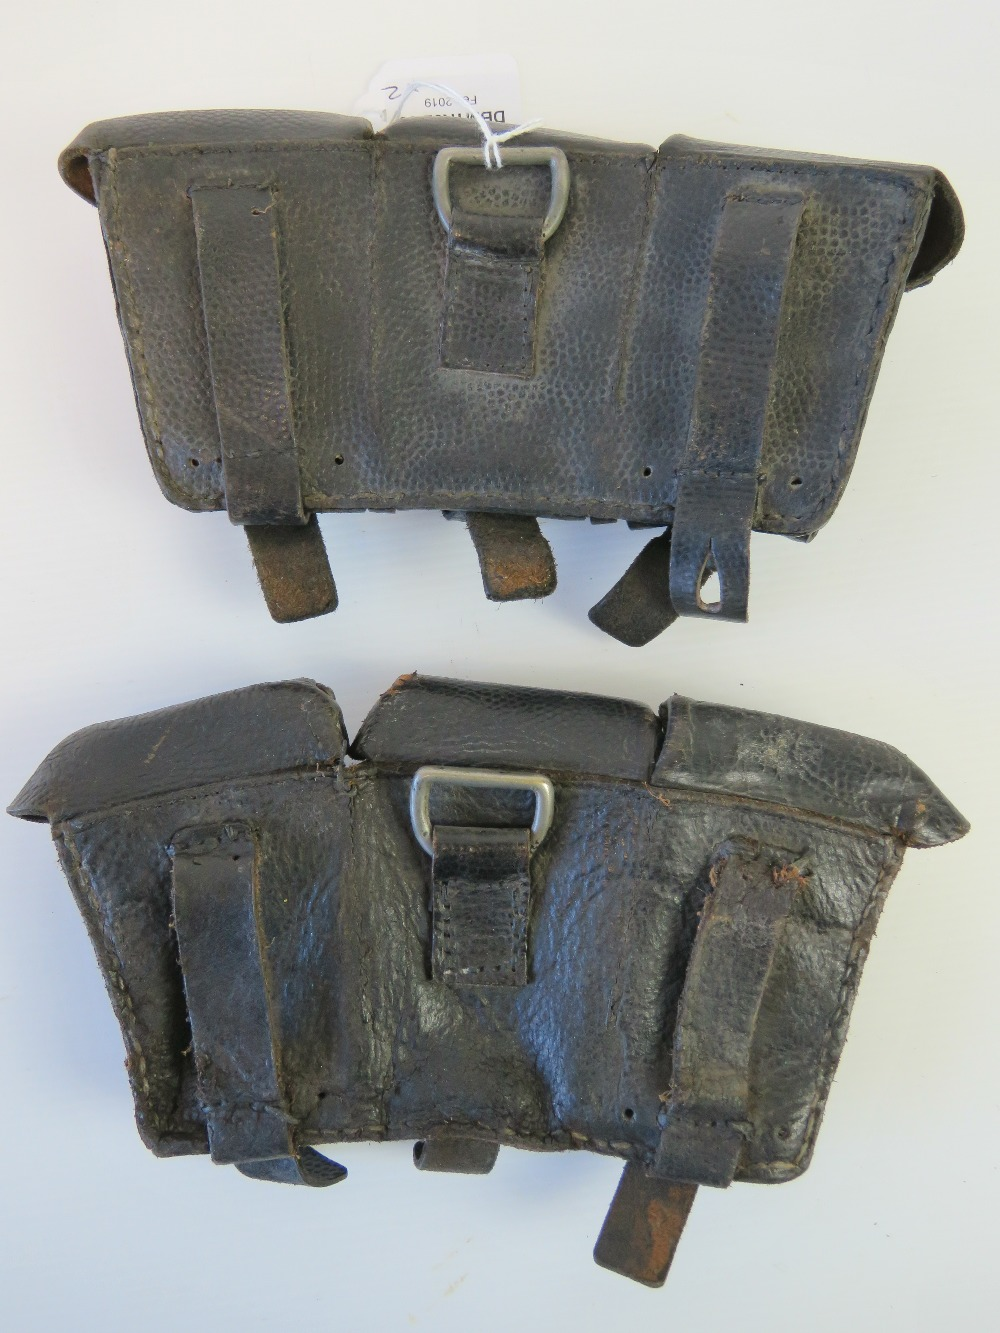 Lot 48 - A pair of WWII German Mauser K98 rifle black leather ammunition pouches.